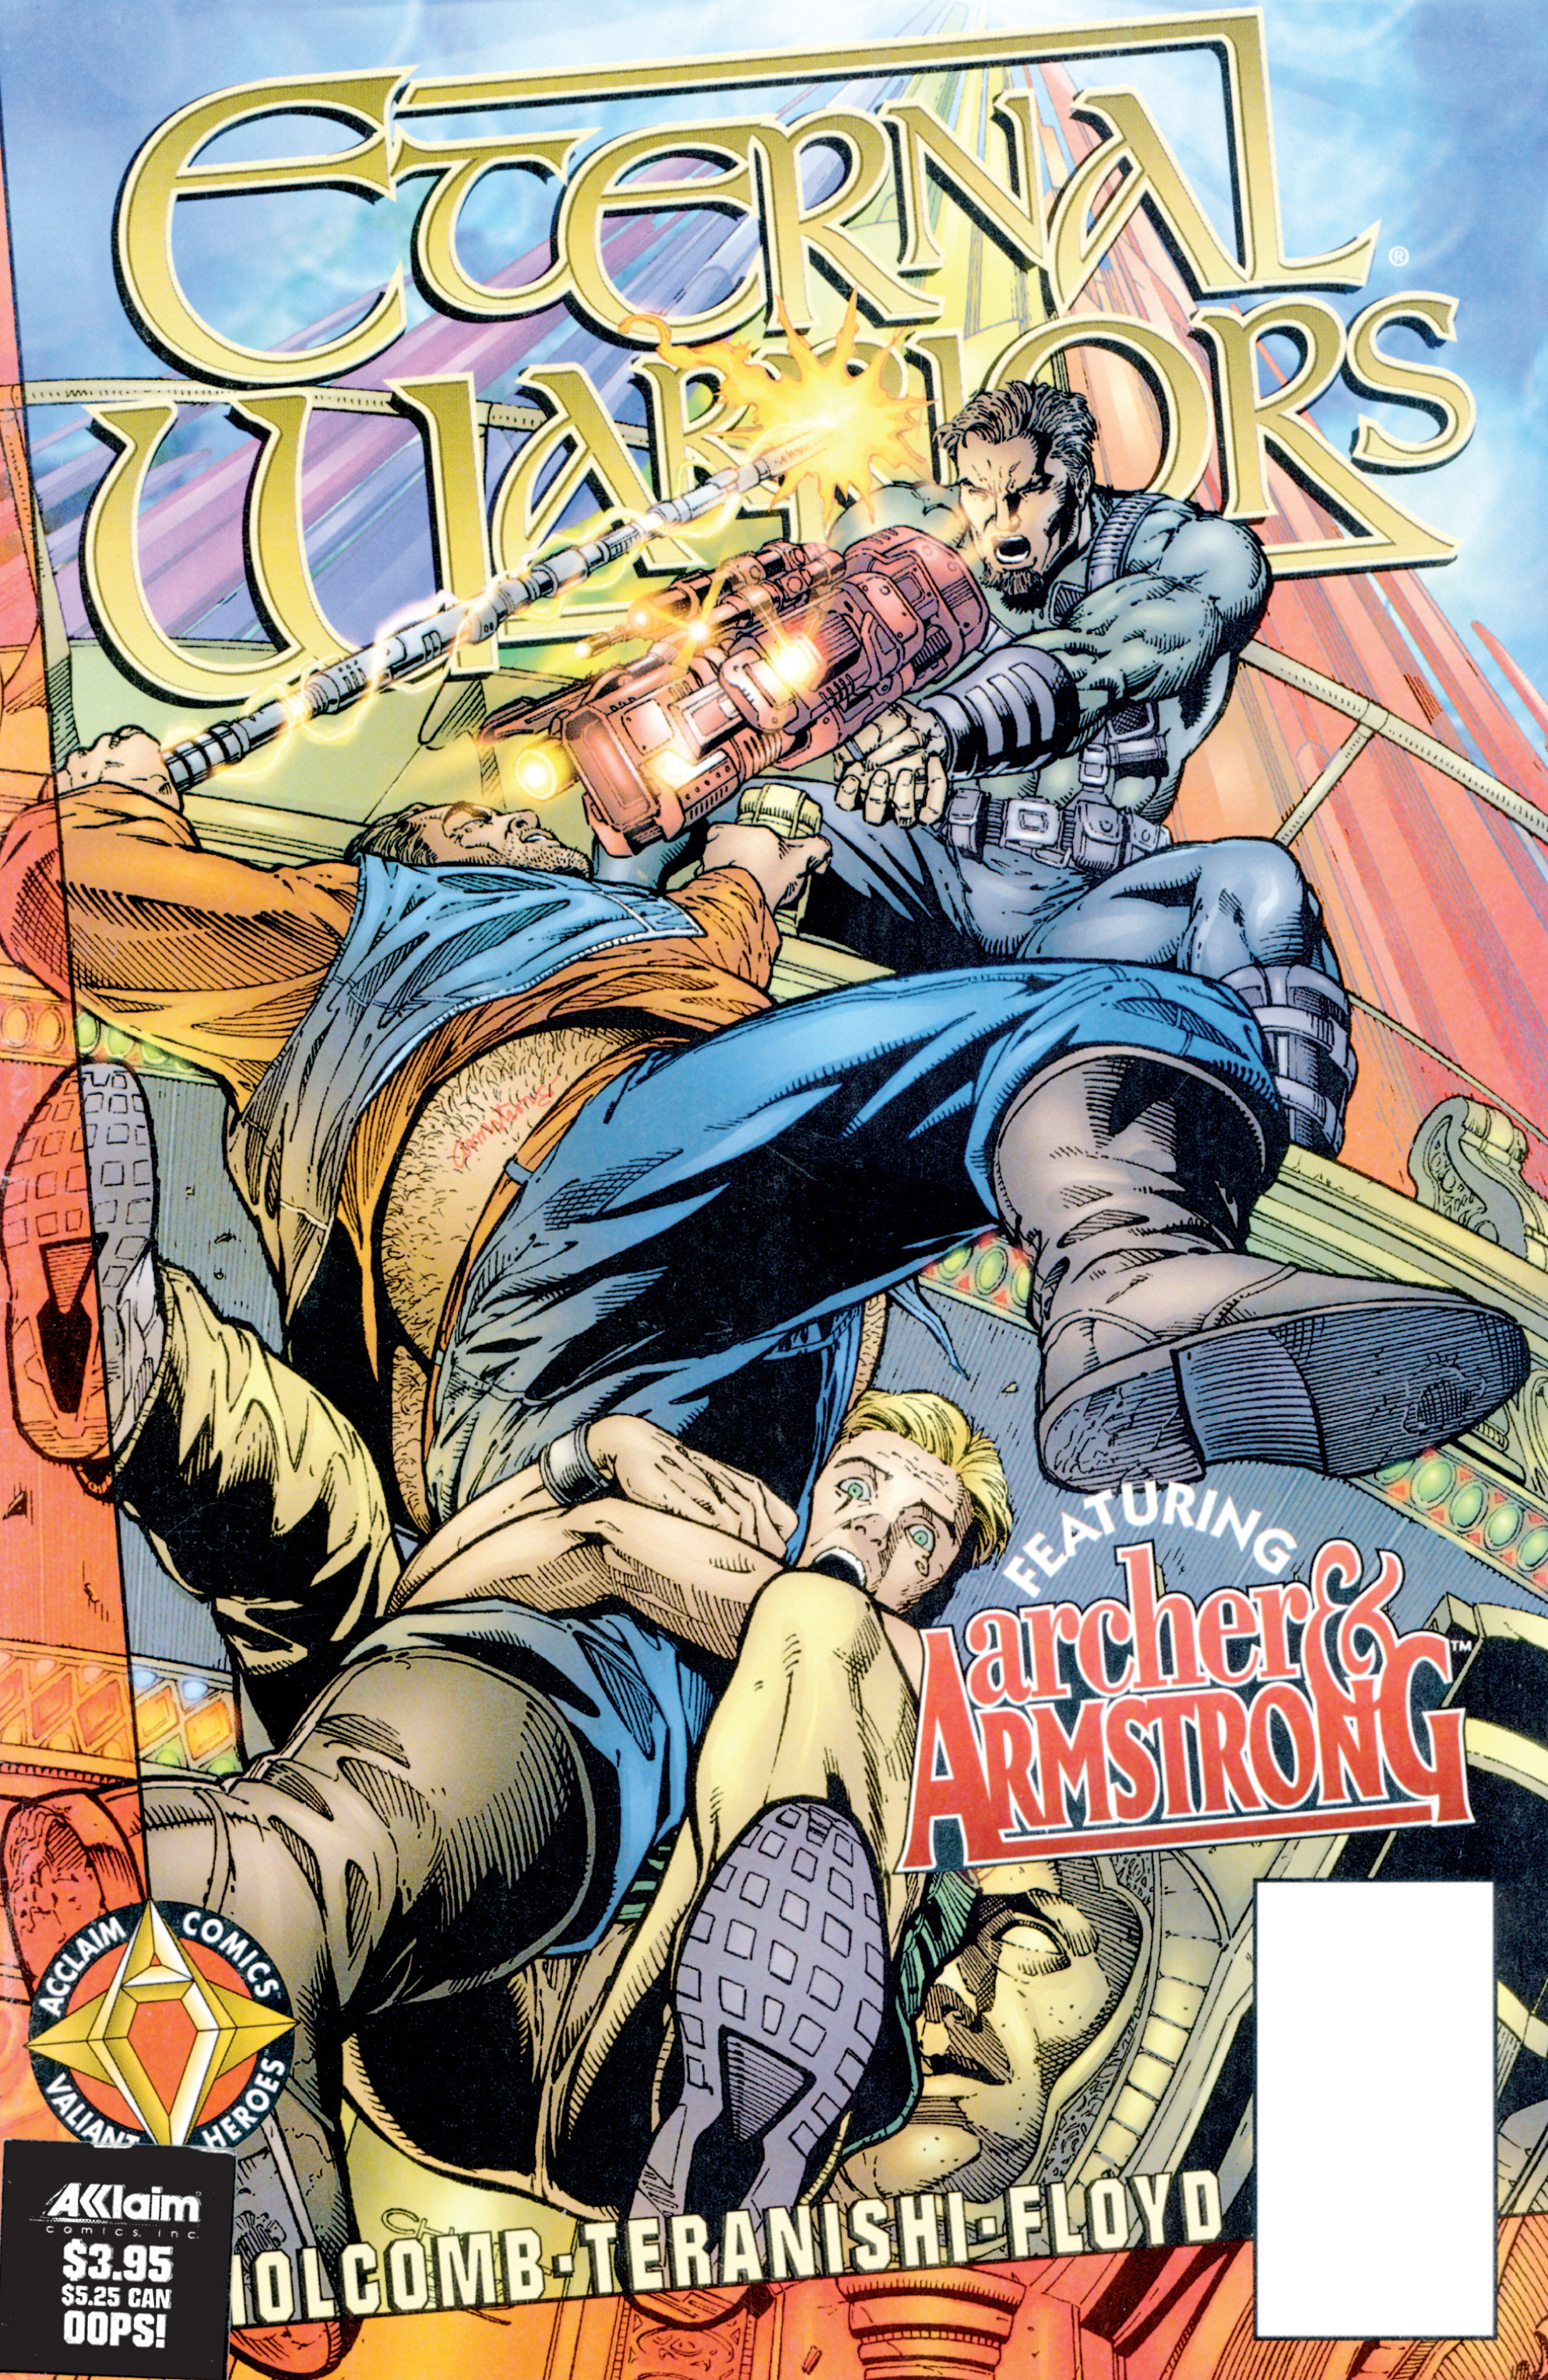 Read online Eternal Warriors comic -  Issue # Issue Archer & Armstrong - 1